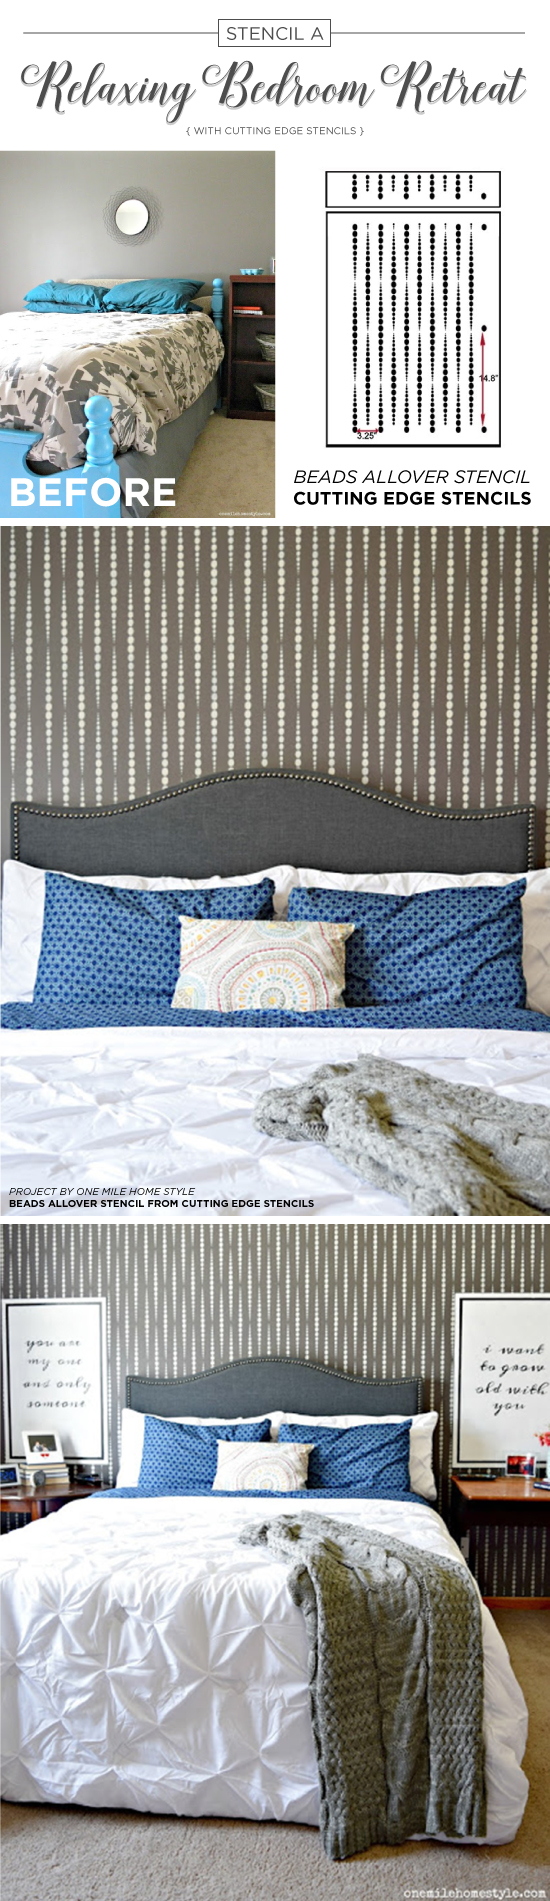 Cutting Edge Stencils shares a DIY stenciled master bedroom makeover using the Beads Allover Stencil on an accent wall. http://www.cuttingedgestencils.com/beads-wall-stencil-pattern.html